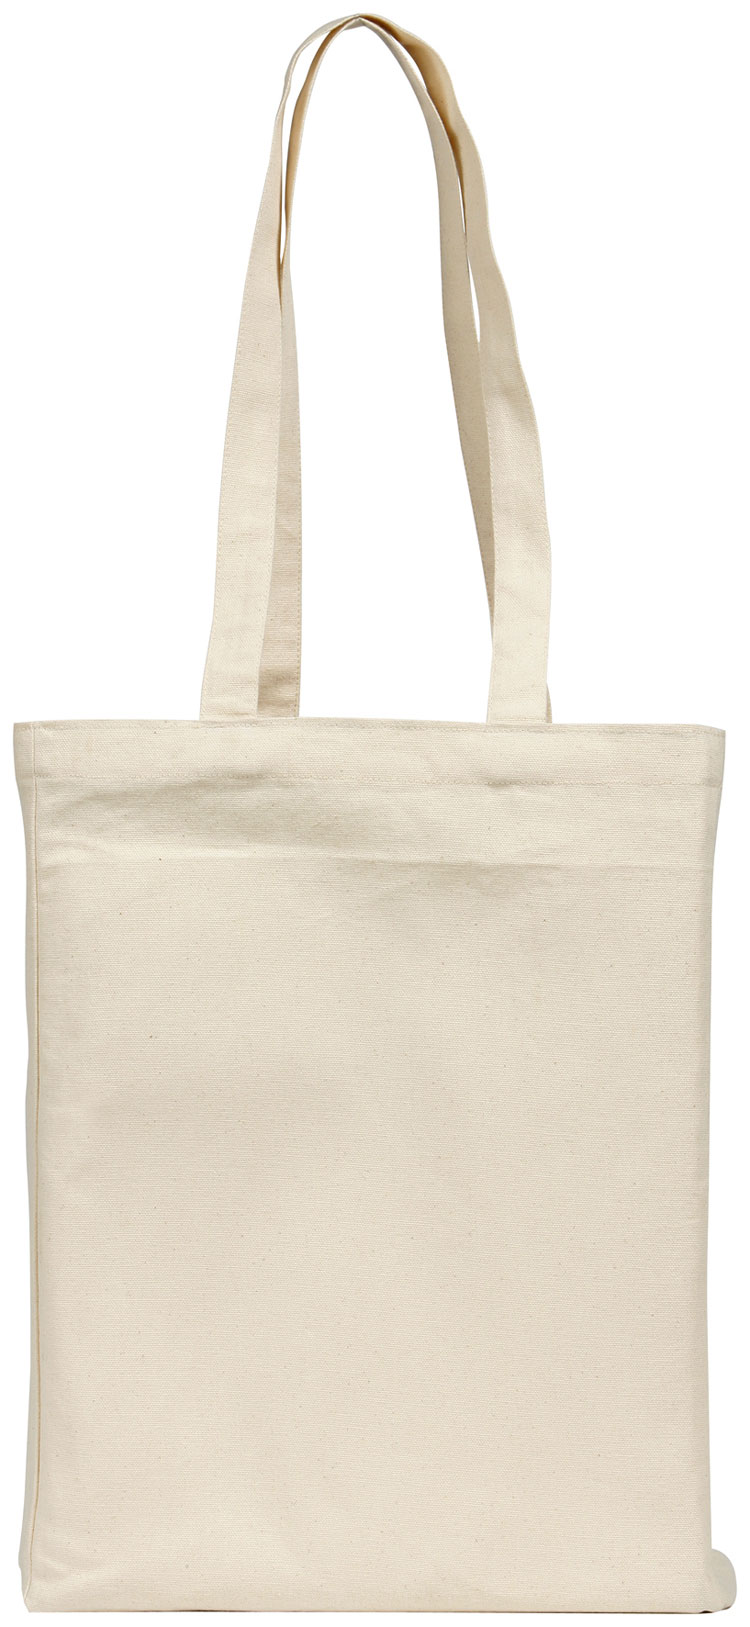 Groombridge 10oz Shopper